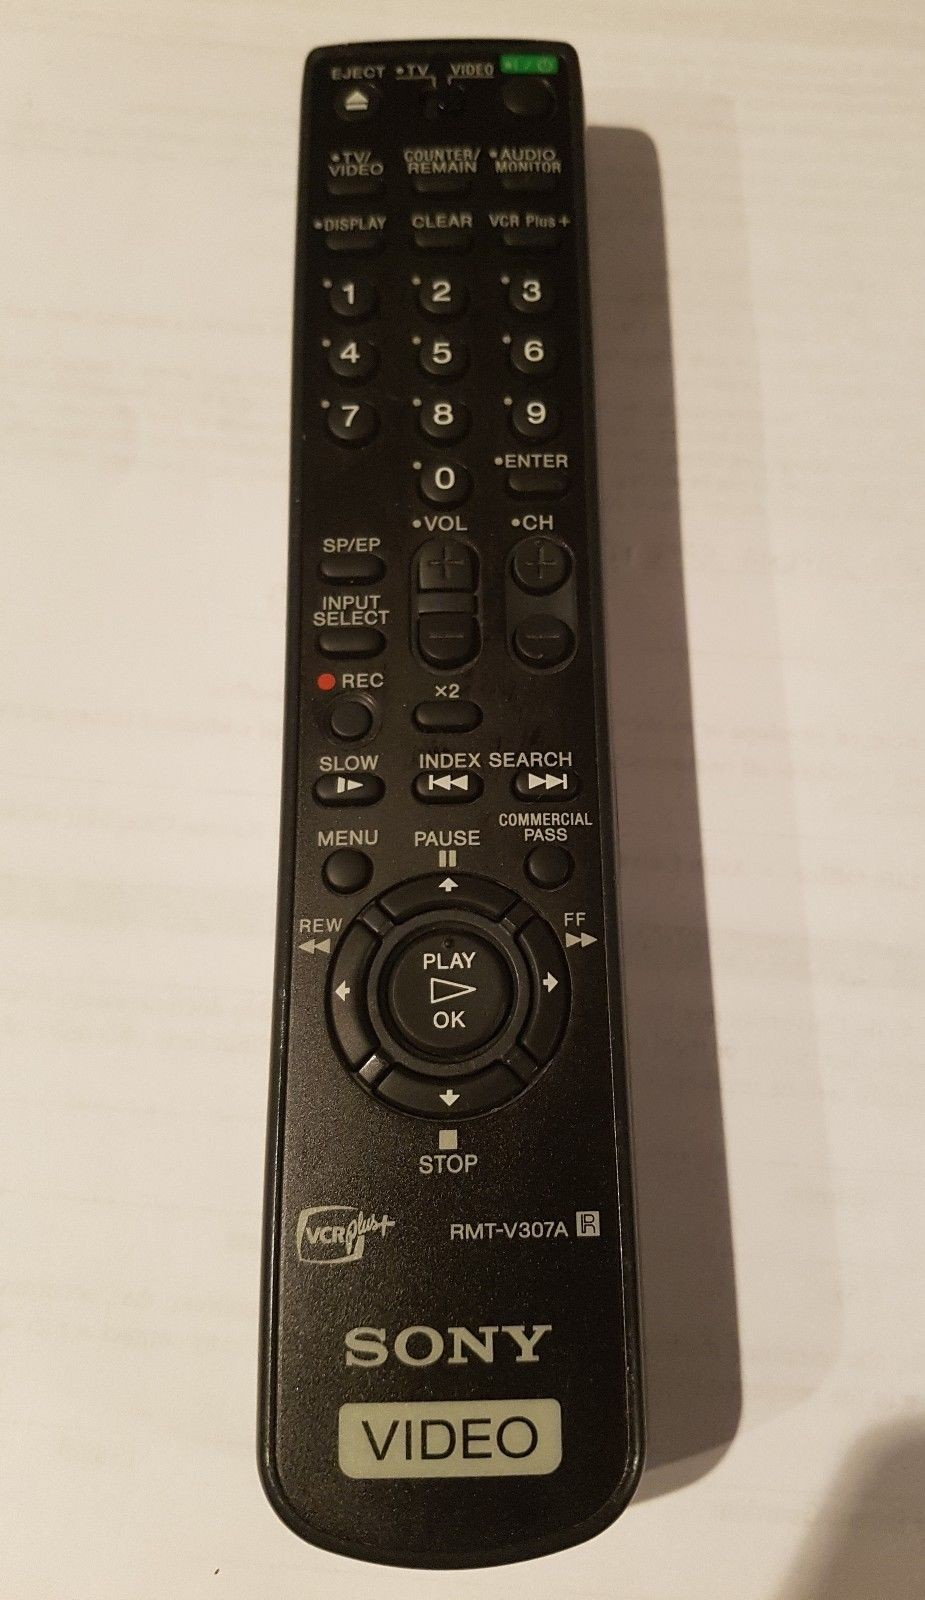 00-45-Used Authentic Sony RMT-V203A Refurbished Remote Control OEM Tested Working-image